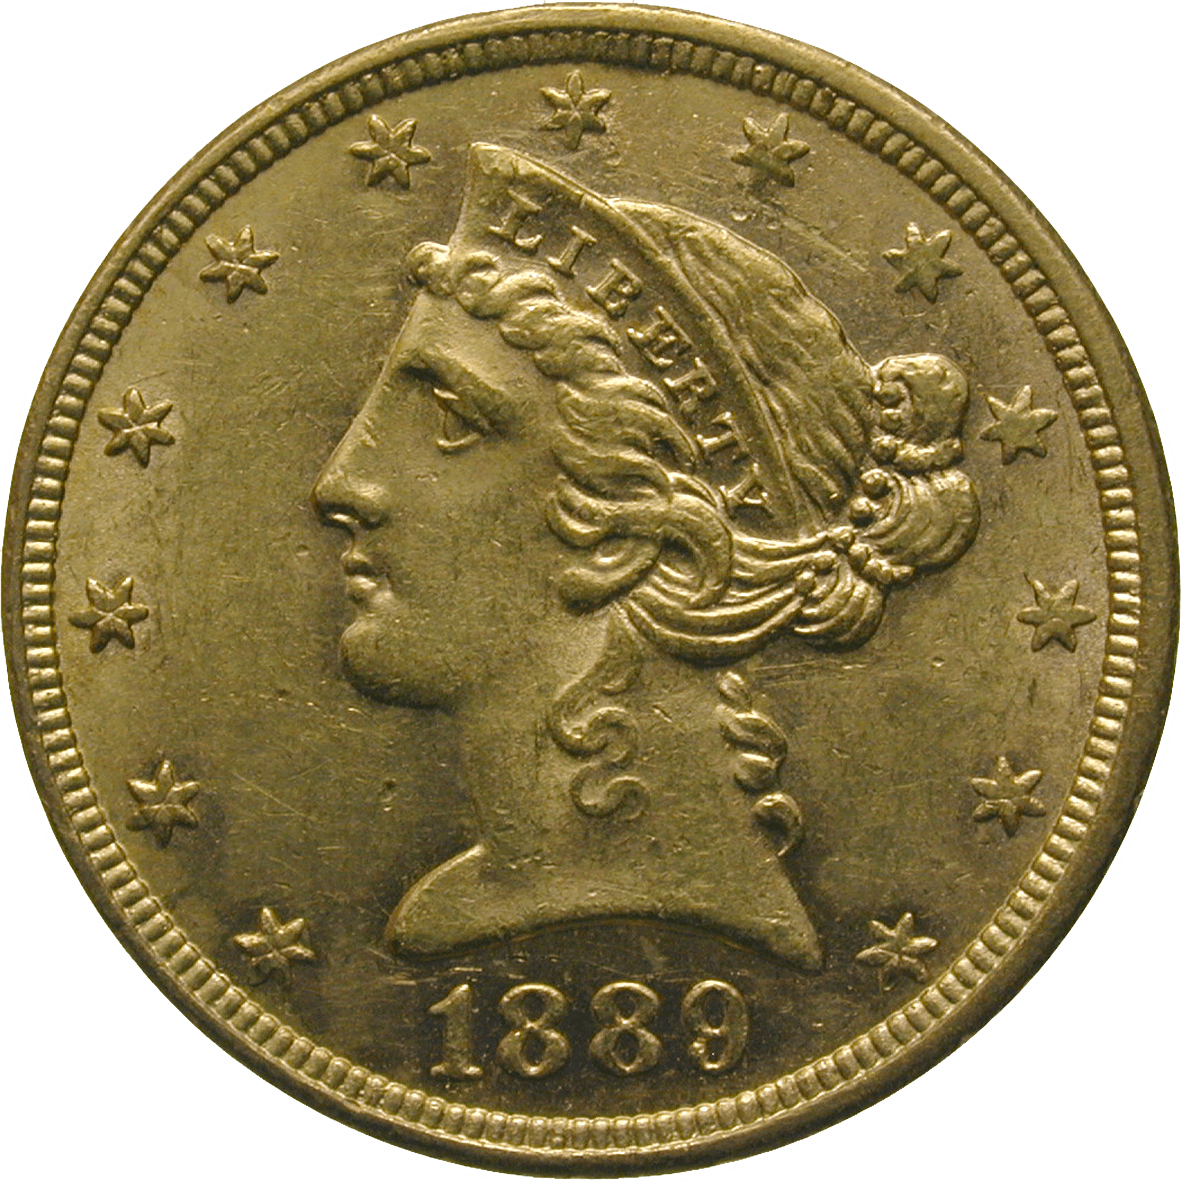 United States of America, 5 Dollars 1889 (obverse)